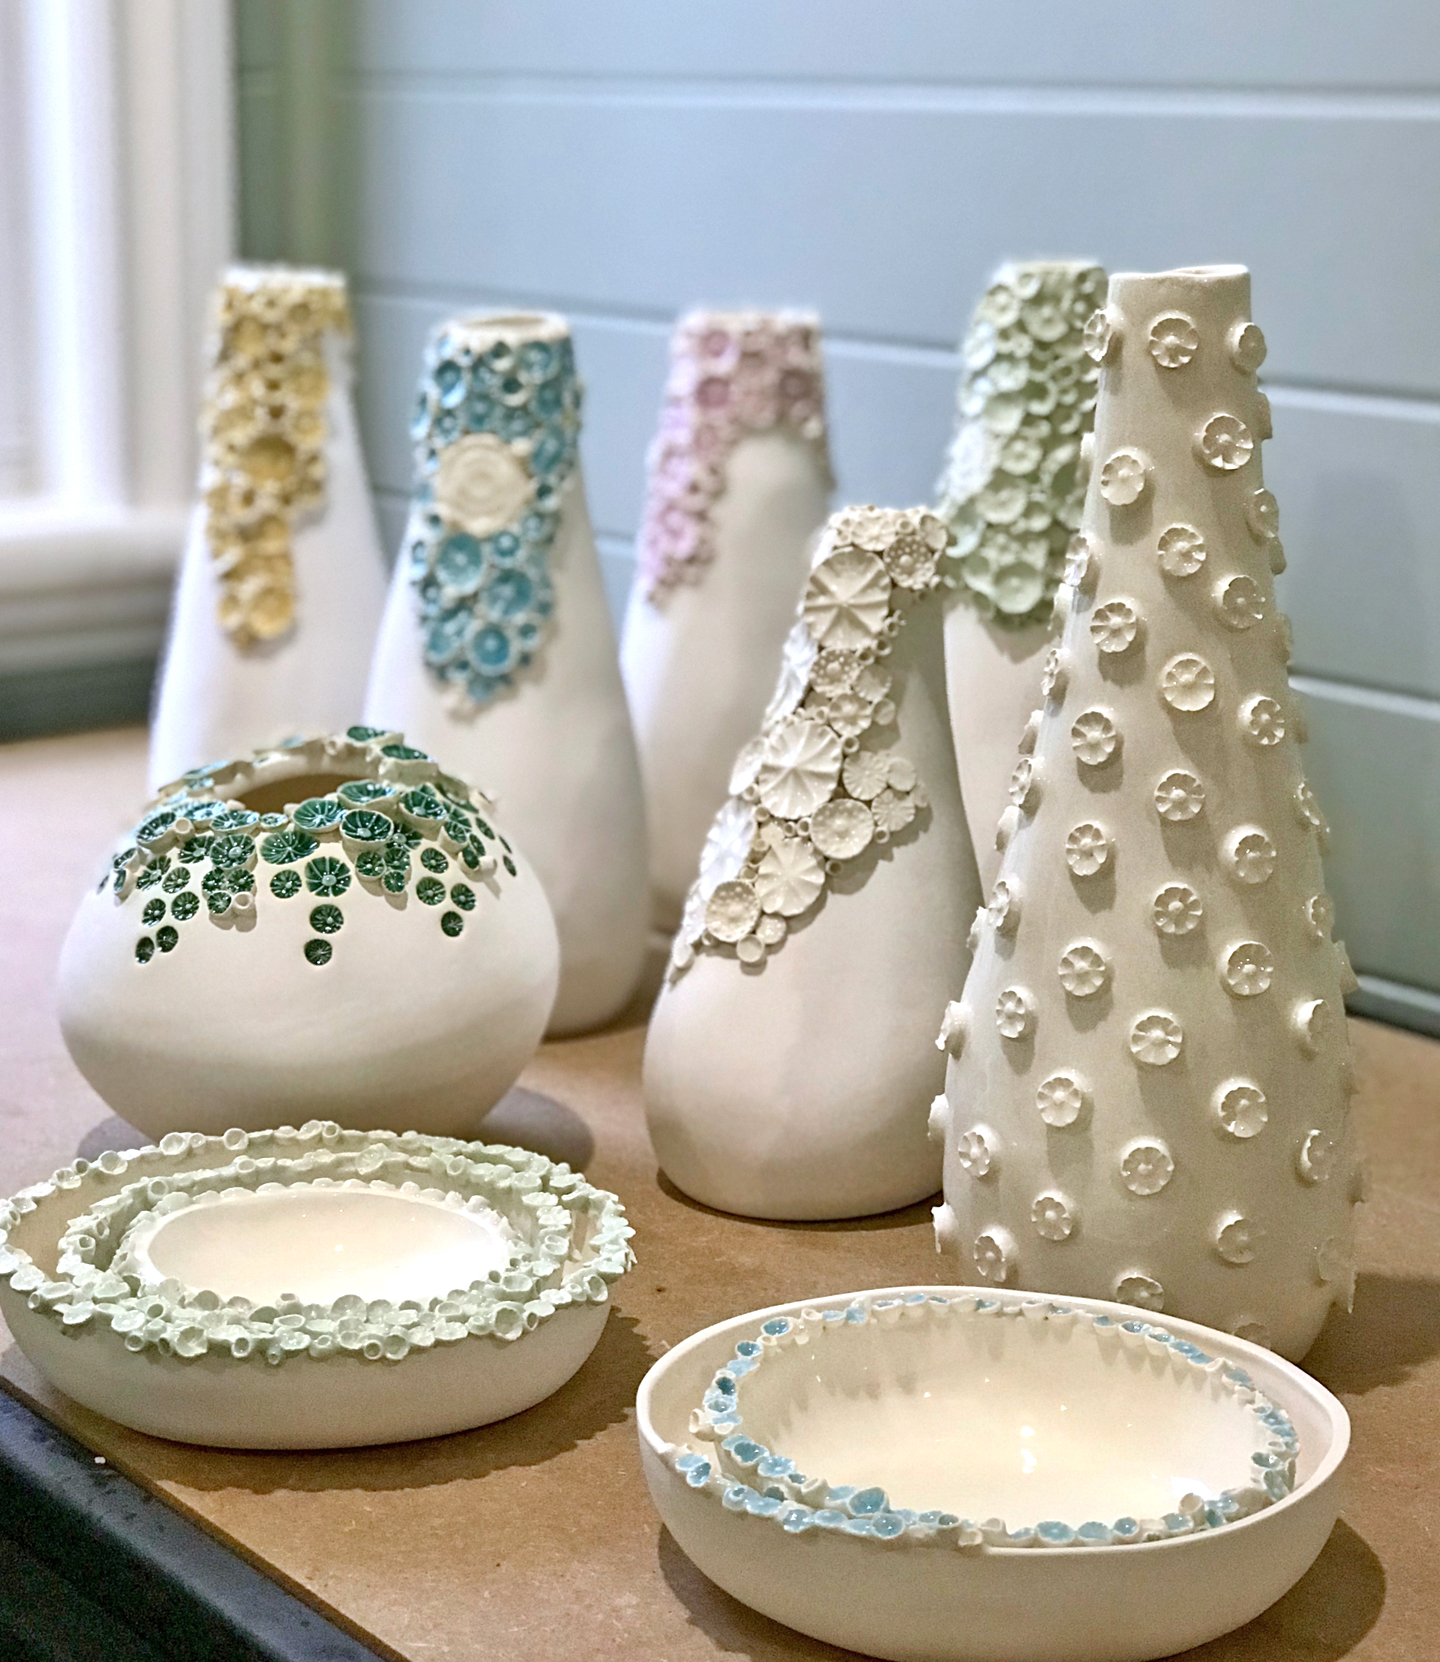 Hand-built earthenware vases and bowls by with 3D barnacle-like decorations by ClayPress Ceramics